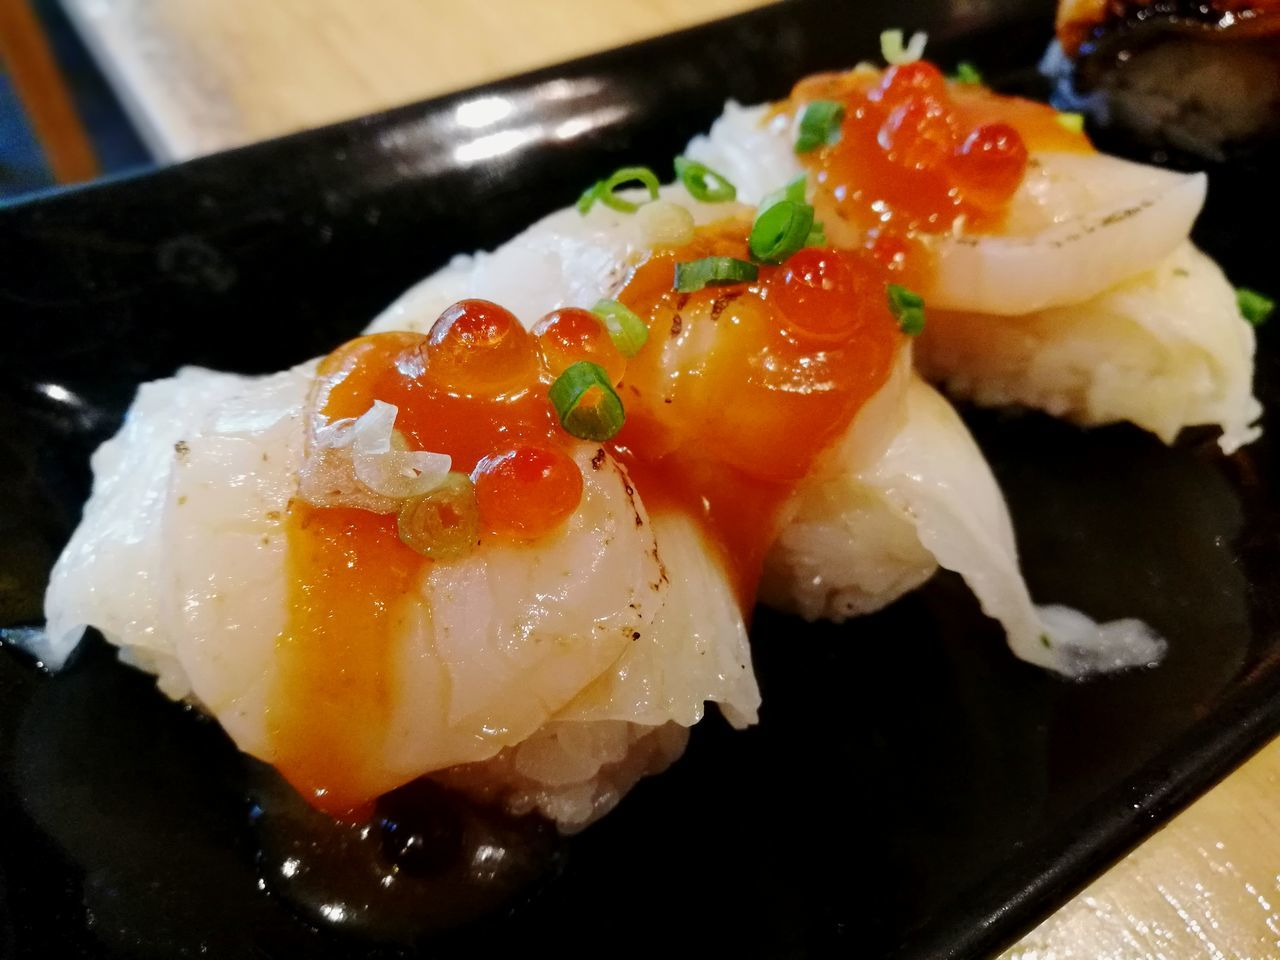 Visual Feast Food And Drink Food Sushi Japanese Food Freshness Ready-to-eat Sushi Lover Sushitime Sushilover Sushi! Sushi Time Sushi Close-up Delicious ♡ Lunch Time Lunch Time! Lunch Break Lunch Food State Lunch! Delicious Lunchtime Gourmet Freshness